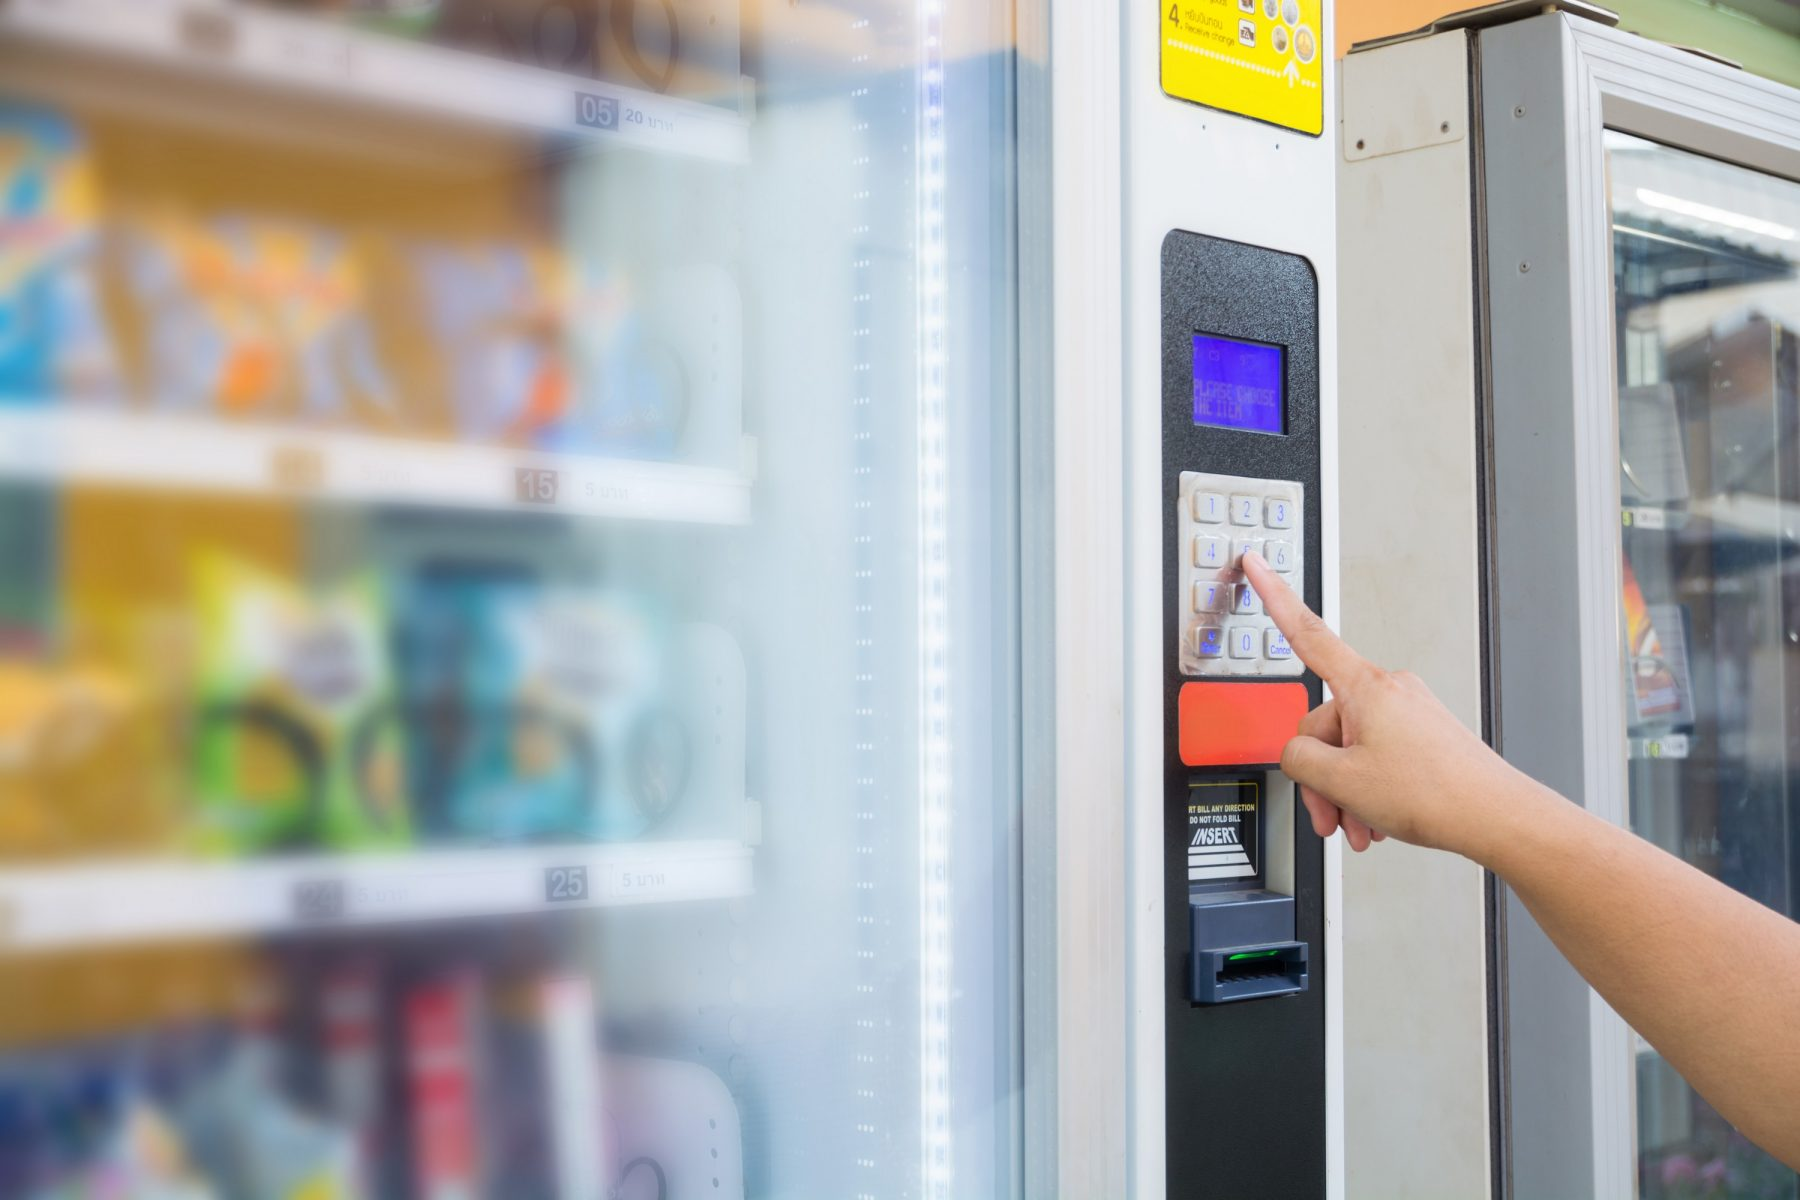 Unmanned Vending Machines Are Favored ON Campus To Strengthen Epidemic Prevention And Control